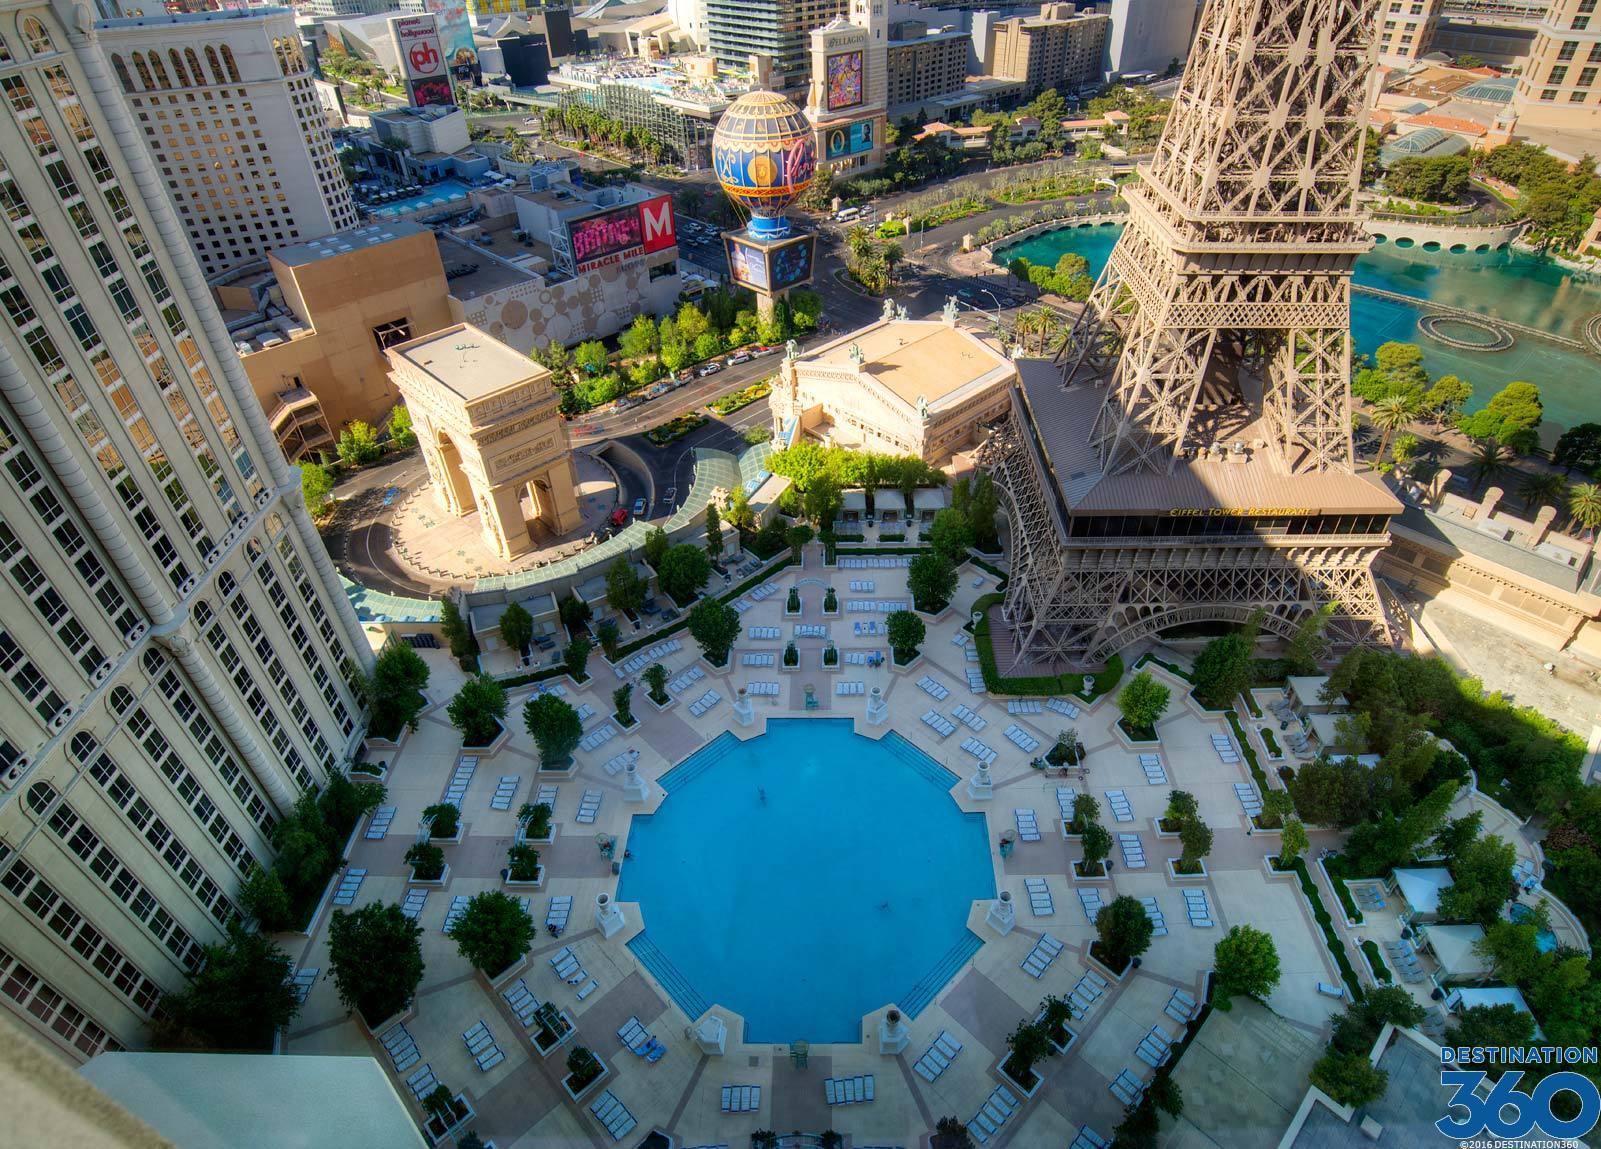 Paris Pool Paris Las Vegas Hotel Pool